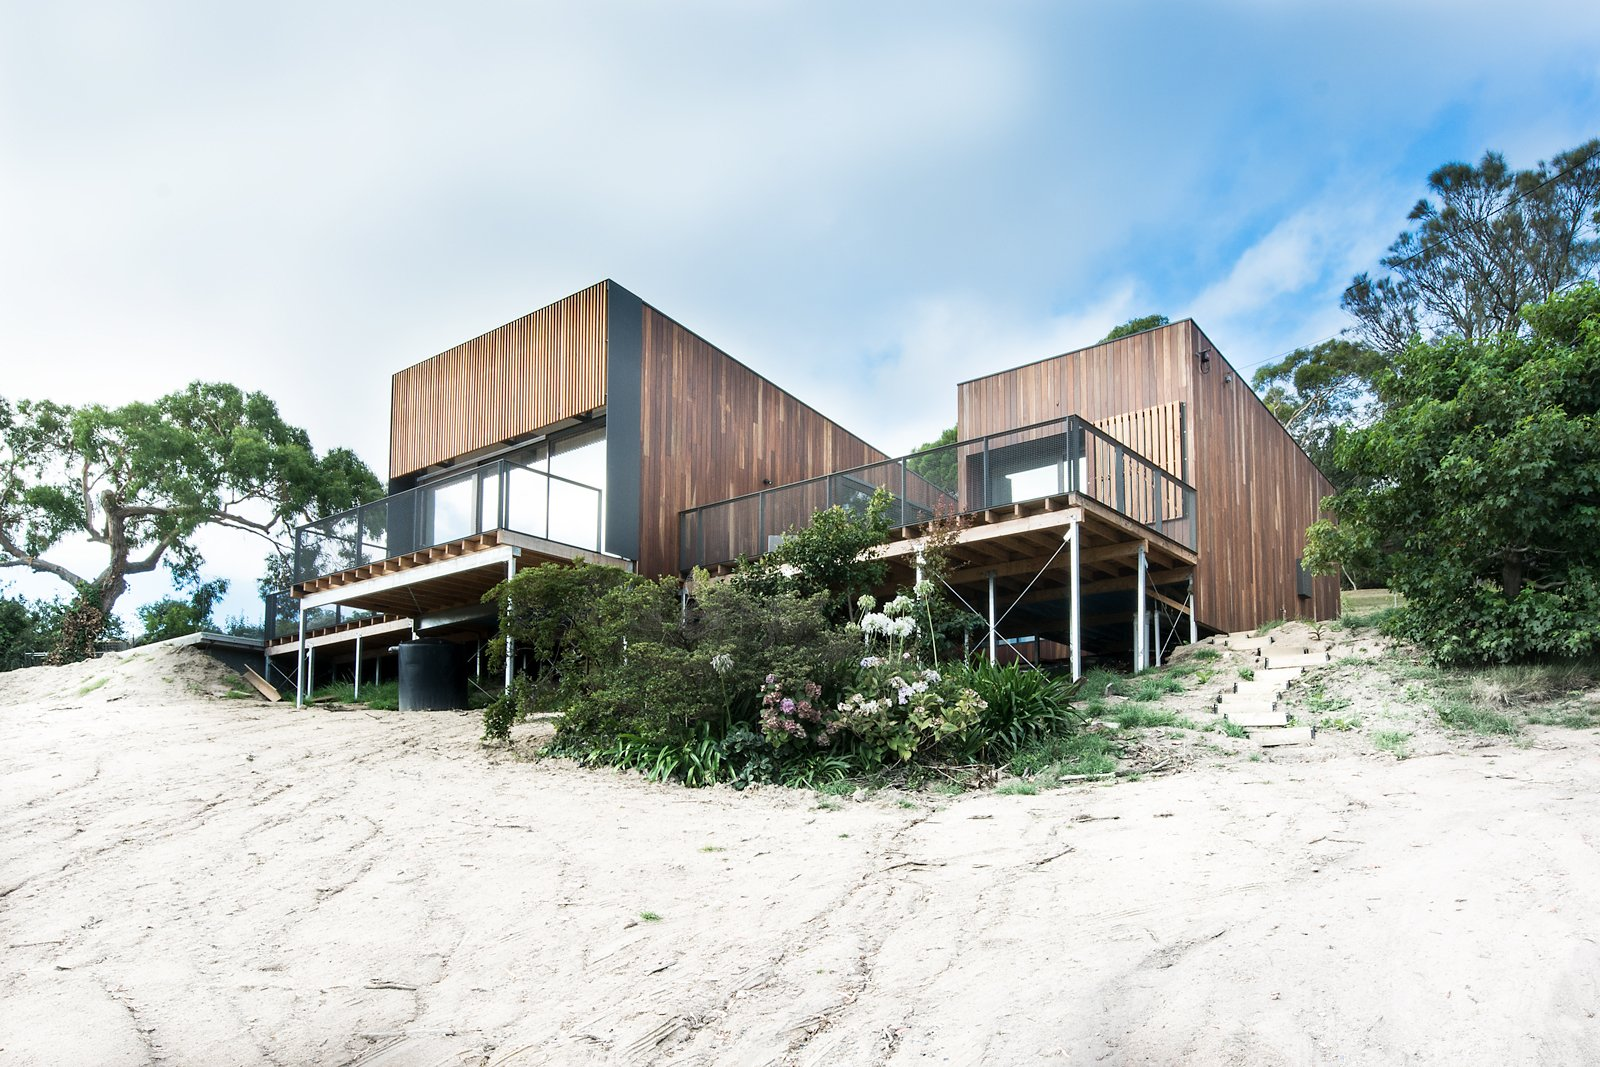 """Exterior, Beach House Building Type, House Building Type, Flat RoofLine, and Wood Siding Material The home, clad in natural Australian timber, enjoys a sense of lightness thanks to slender columns that let it float over the dunes. The driveway and entry, at the rear of the building, have an understated design to build to the interior's magnificent ocean views. Firm director Phil Snowdon explains, """"By creating an architectural form that draws your eye and leads you up the steep driveway, we could engage new visitors in a welcoming process that first reveals the object and then slowly reveals the main event, being the view.""""  Photos from Martha"""